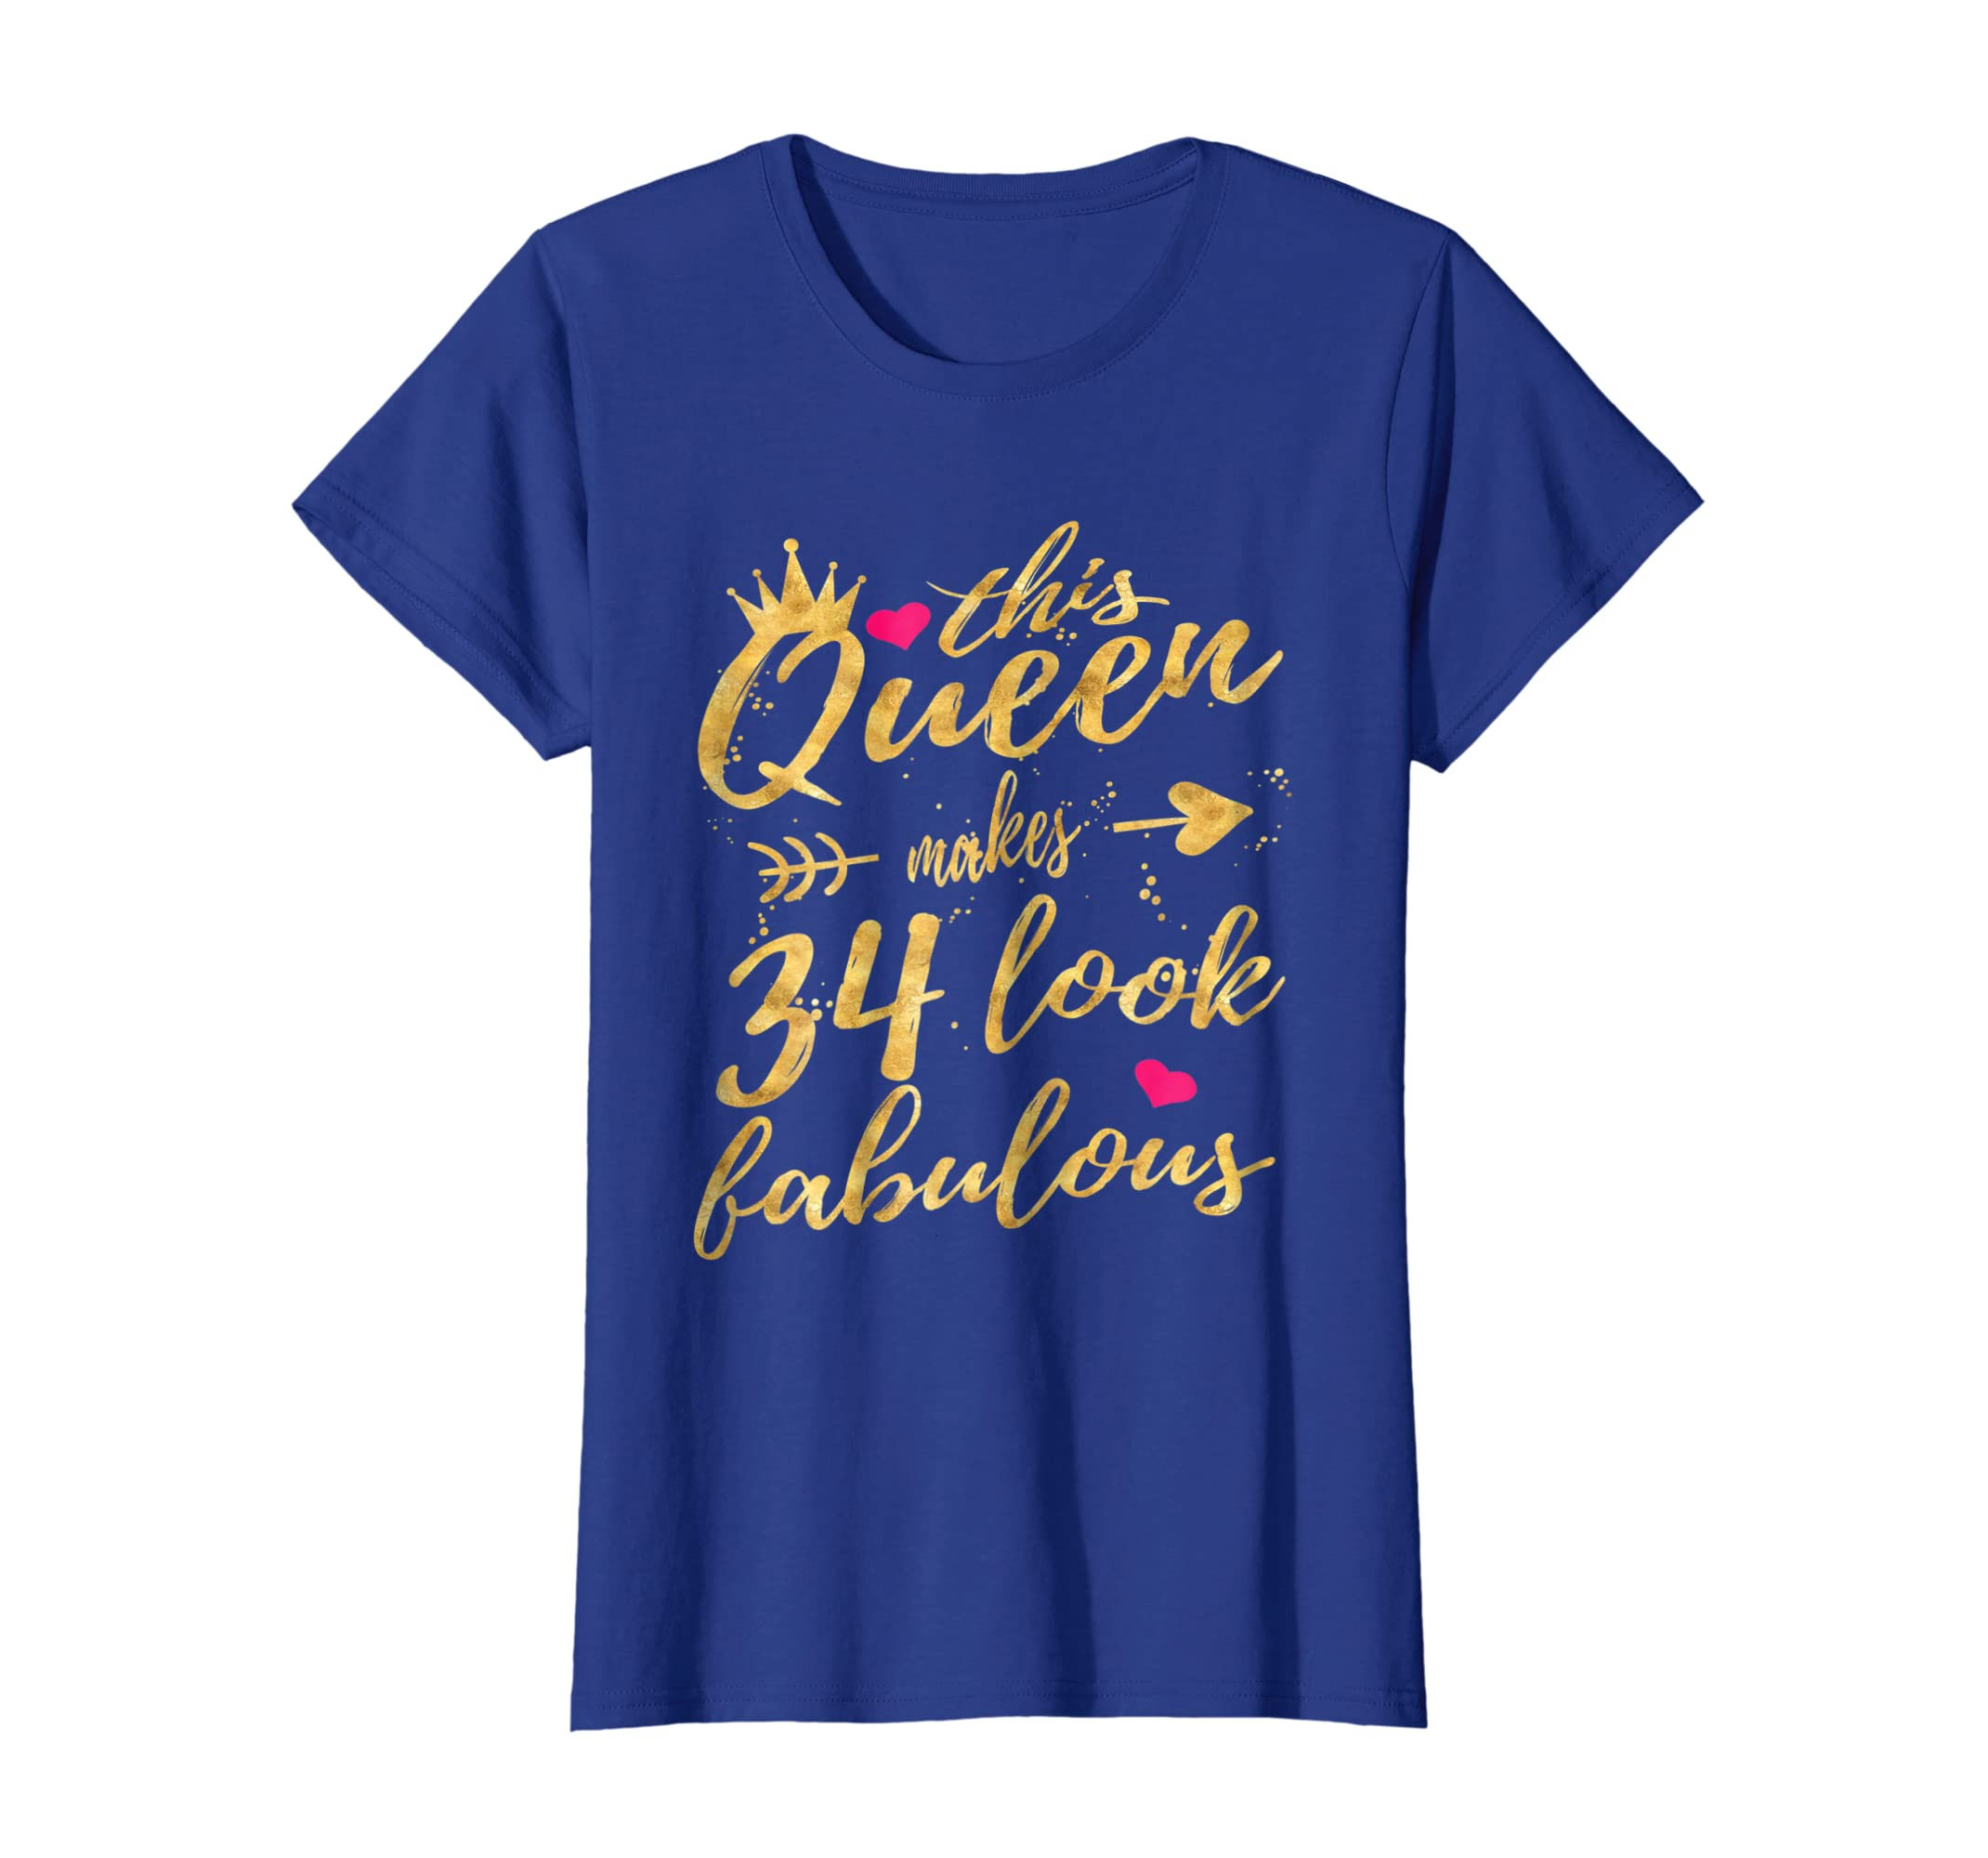 Amazon This Queen Makes 34 Look Fabulous 34th Birthday Shirt Women Clothing